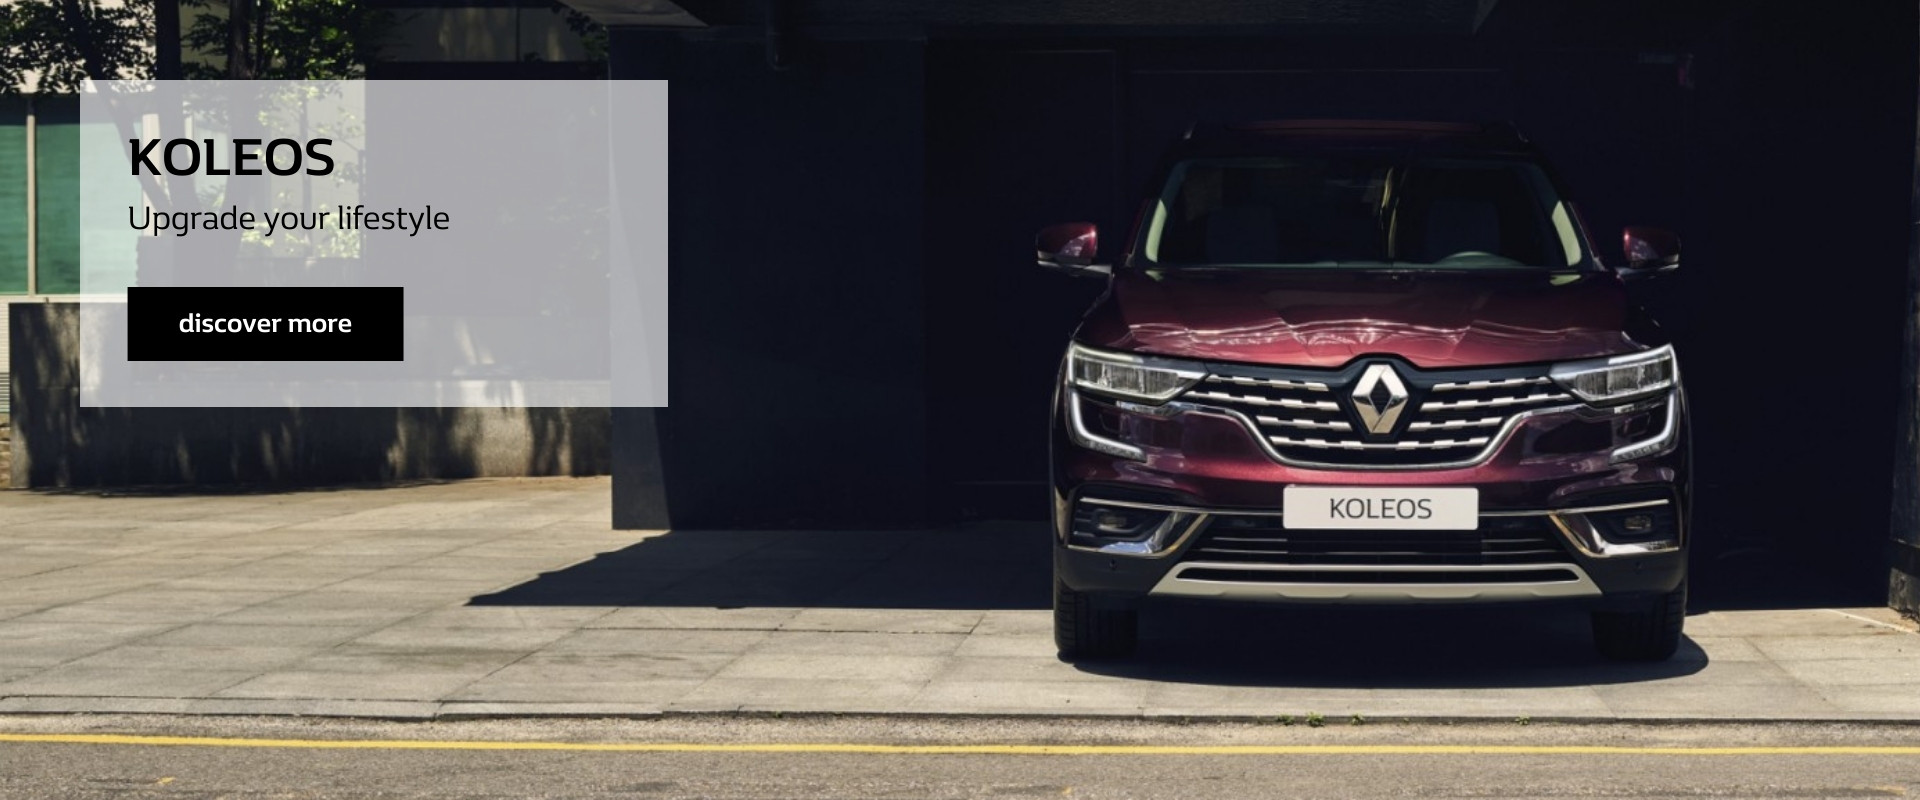 Renault Koleos - Style with substance - Book a test drive today at Cricks Maroochydore Renault